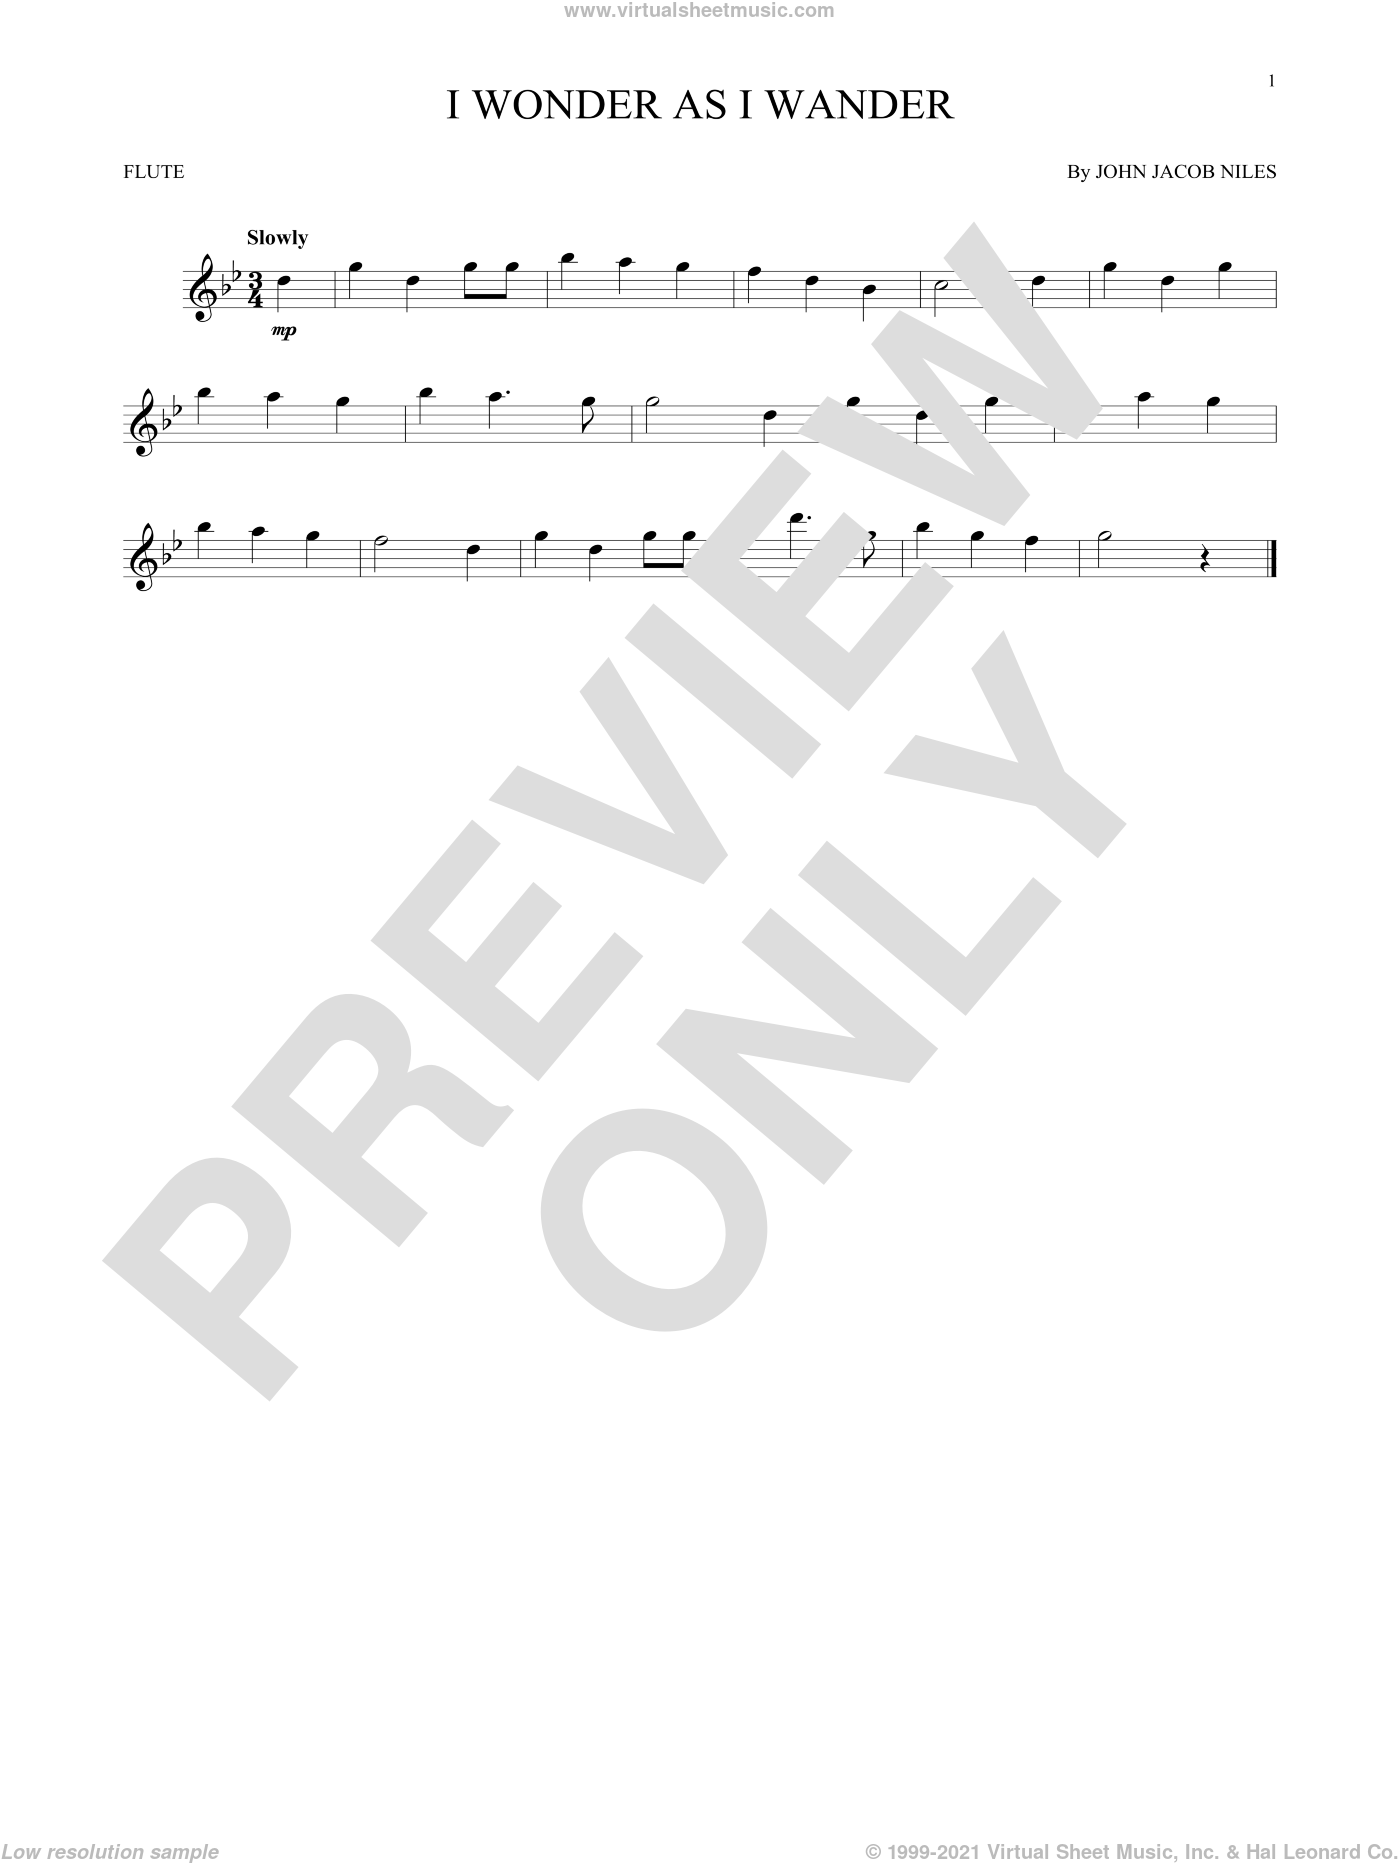 I Wonder As I Wander sheet music for flute solo by John Jacob Niles. Score Image Preview.